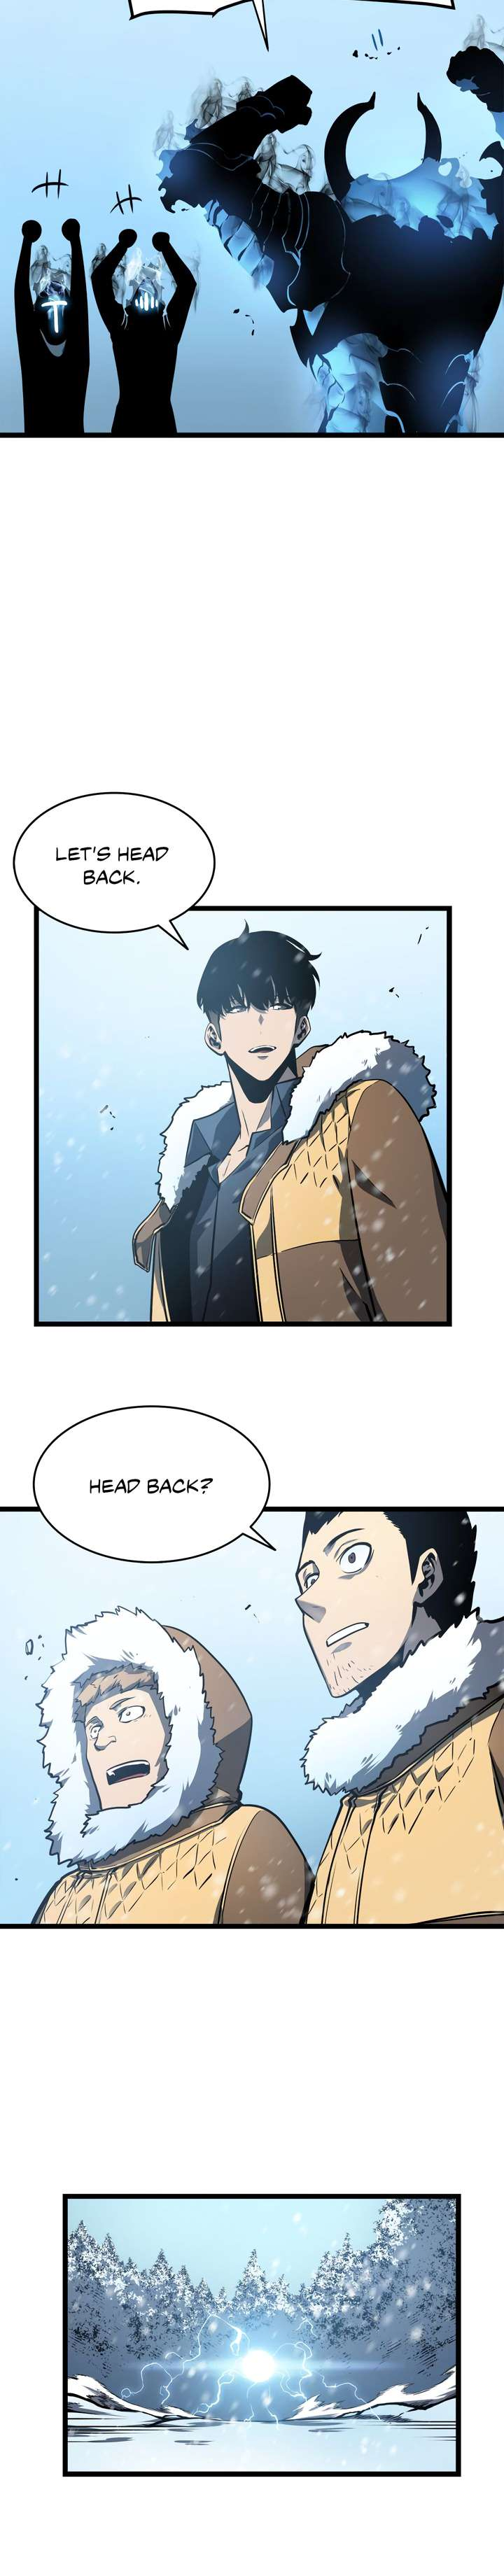 Solo Leveling Chapter 54 Page 28